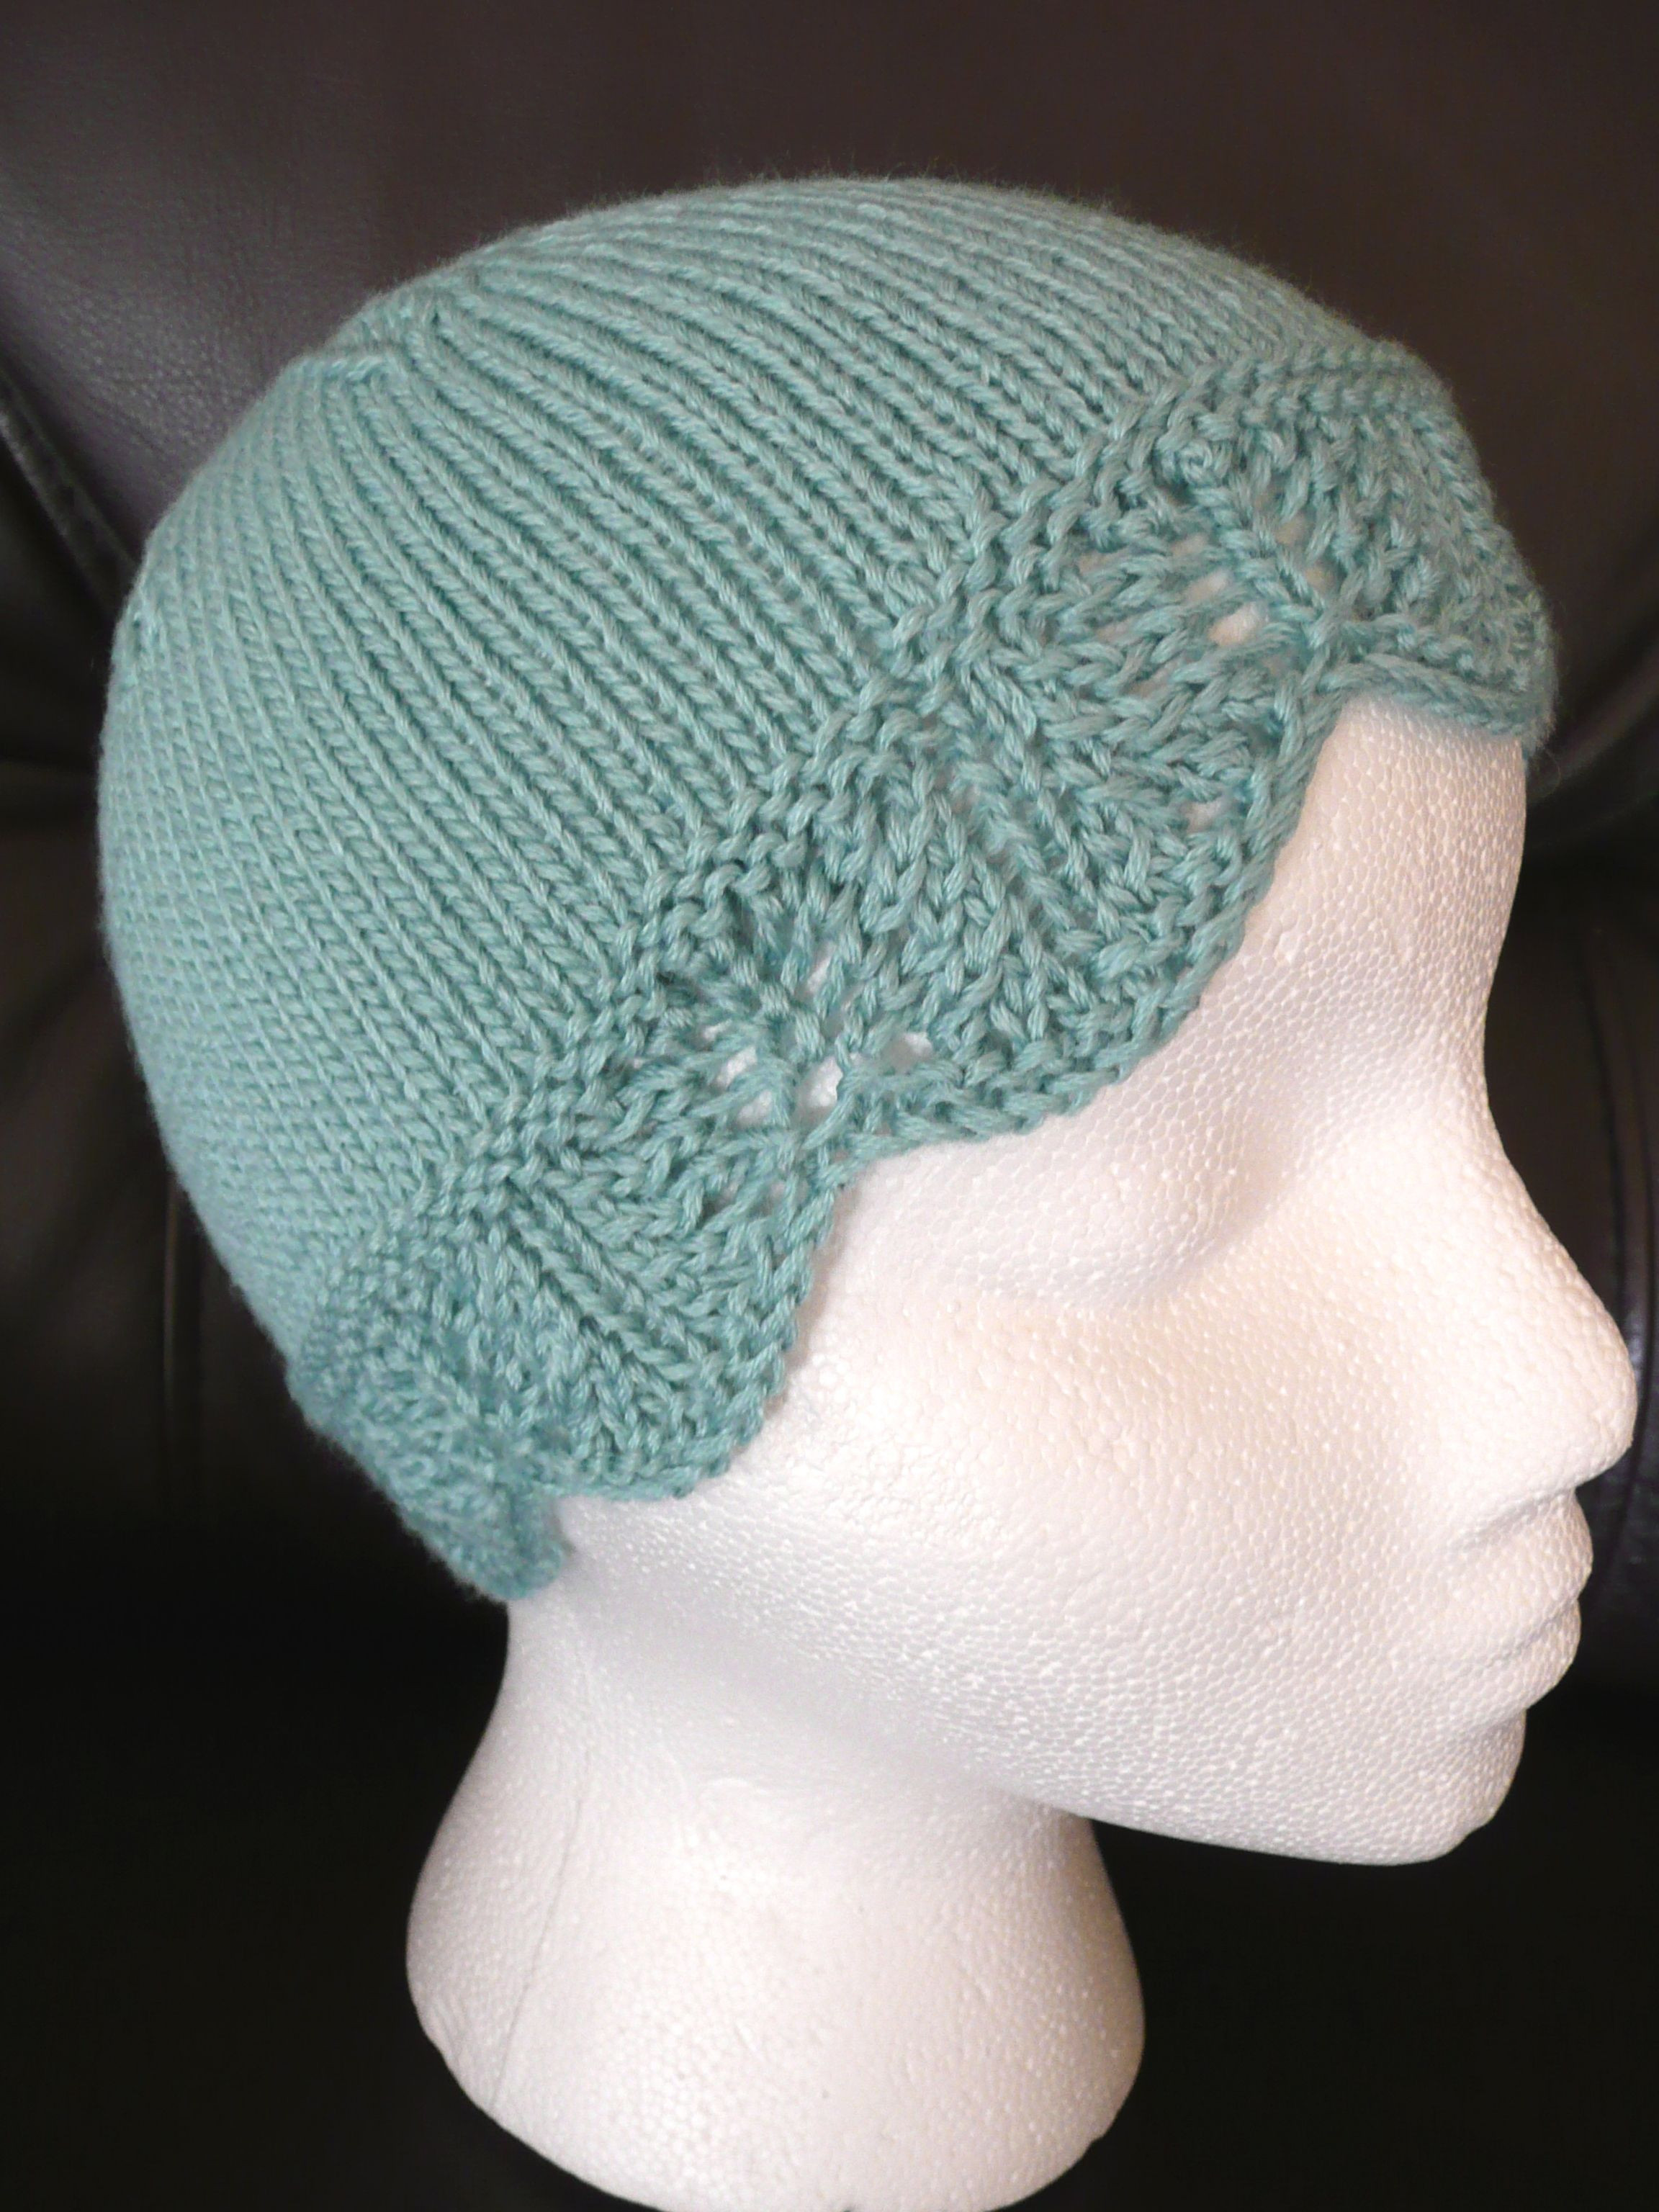 Best Of Free Crochet Chemo Hat Patterns Knit Hats for Cancer Patients Of New 48 Models Knit Hats for Cancer Patients